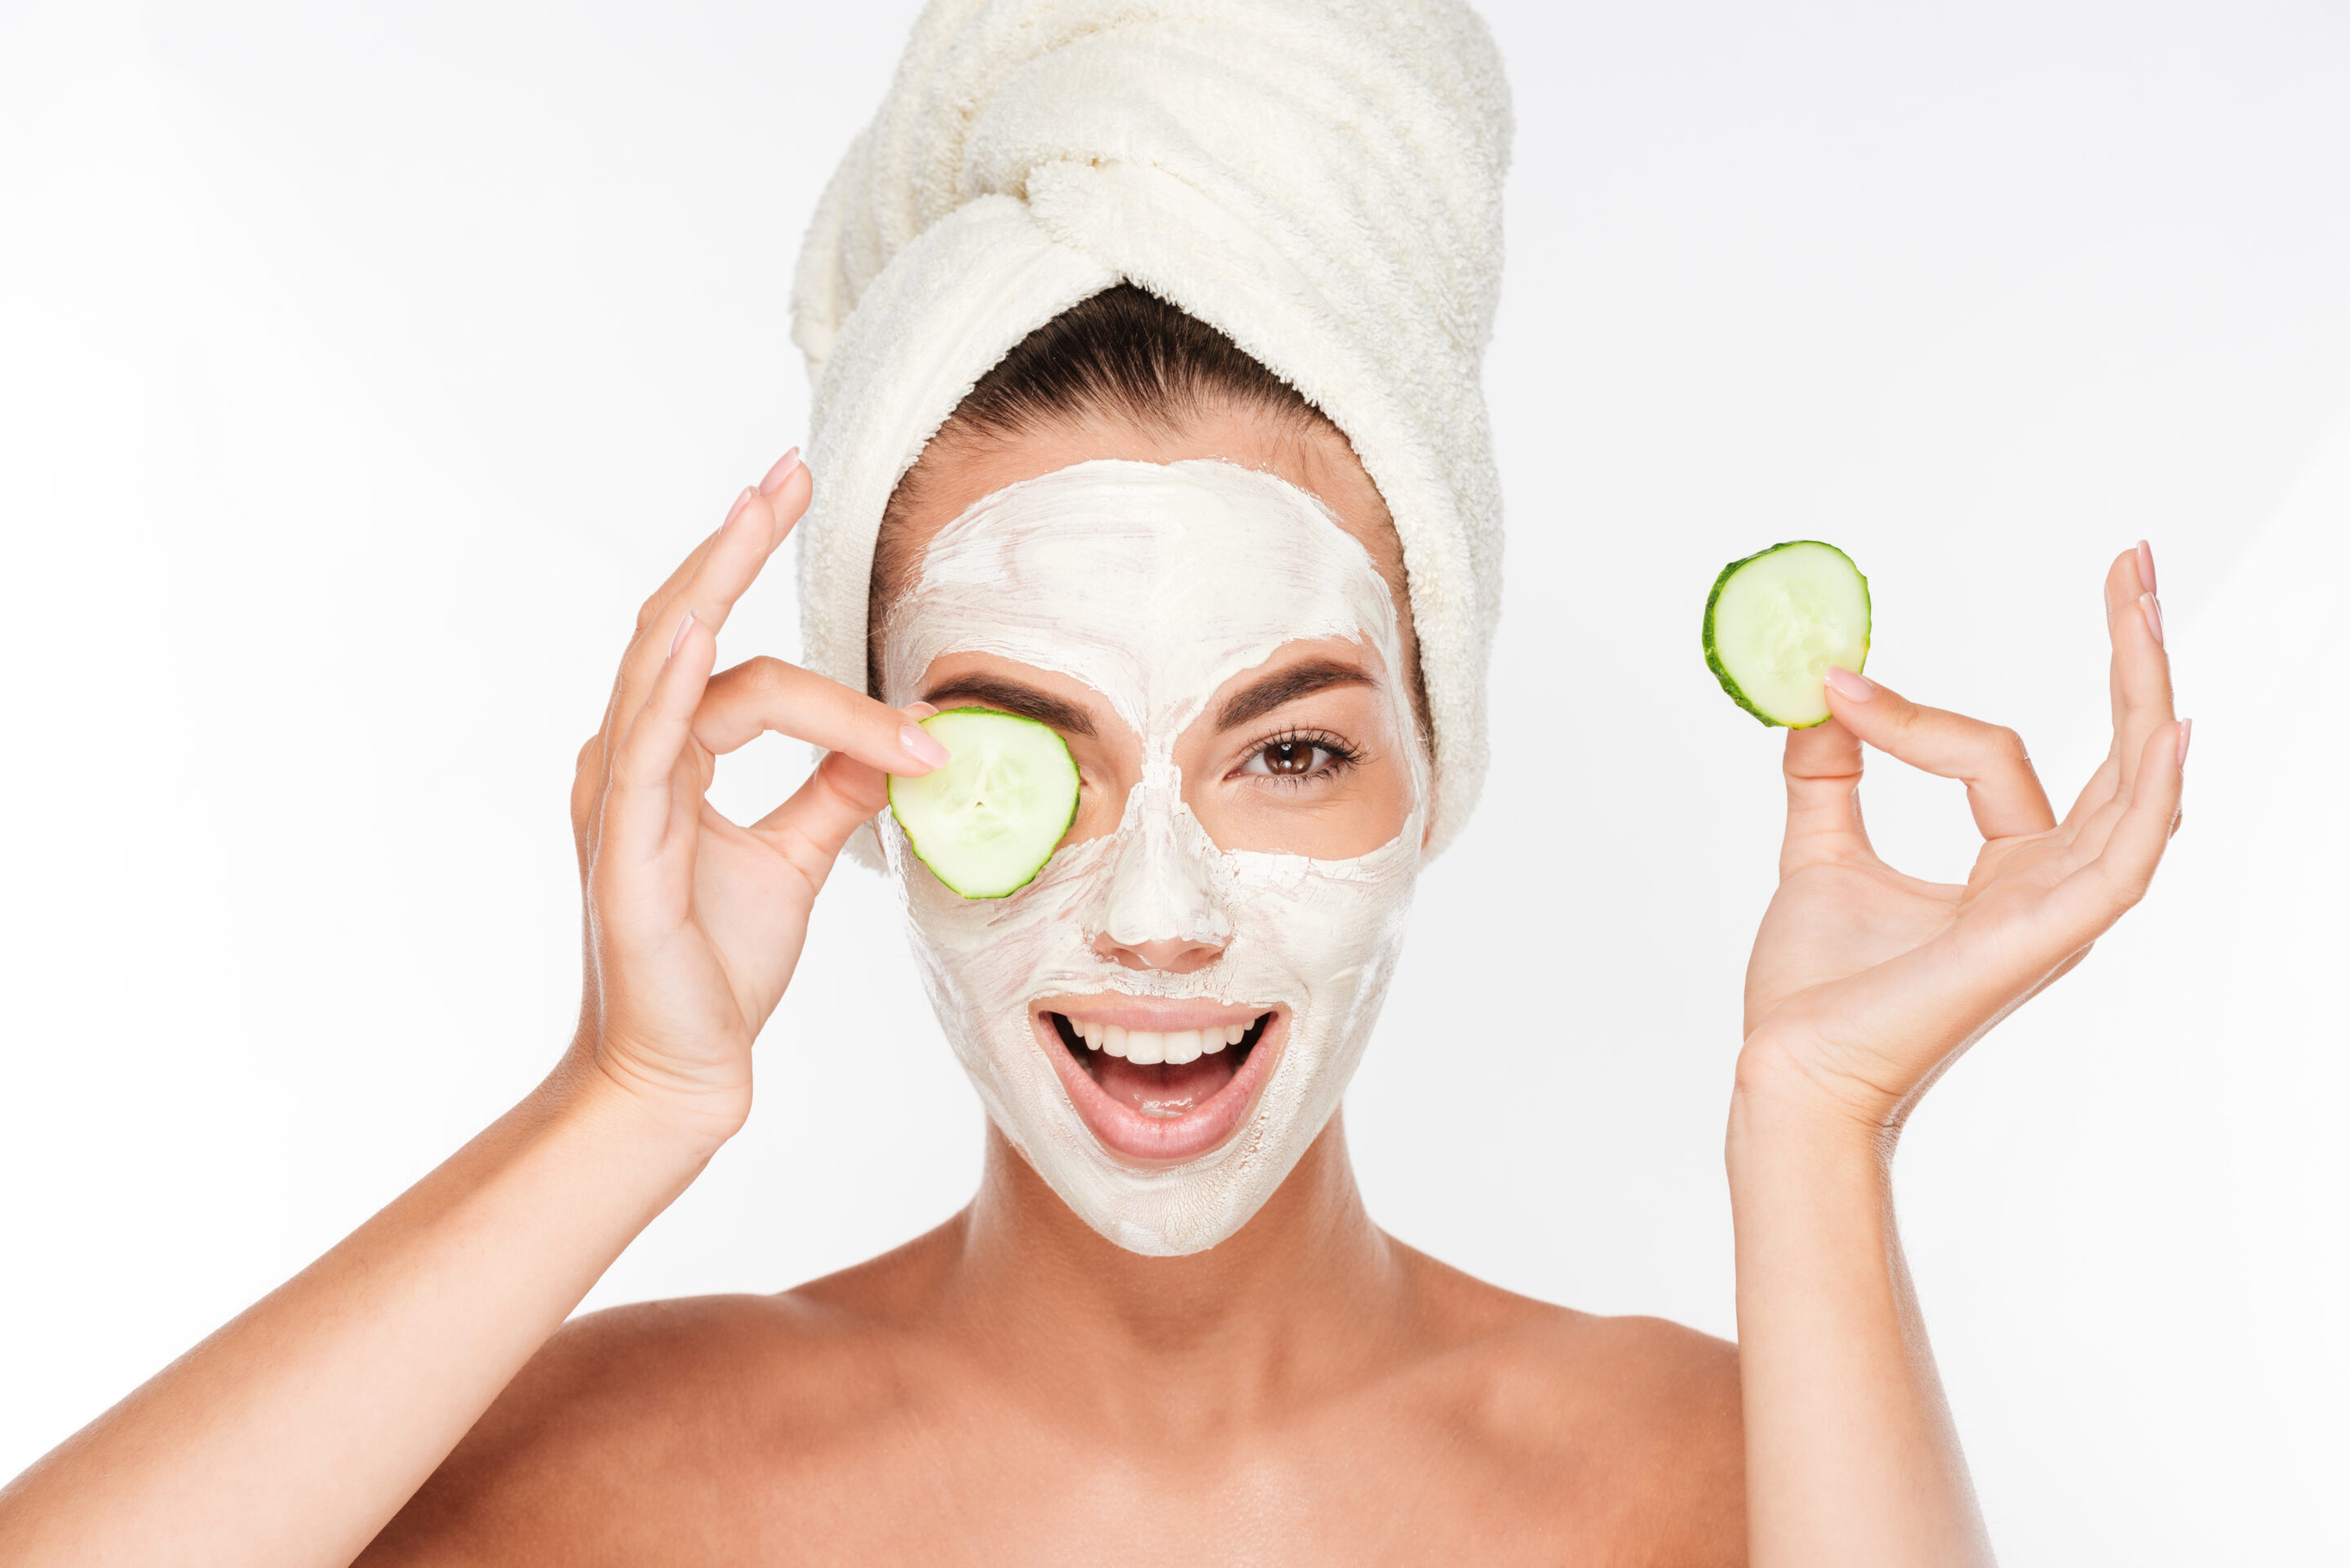 graphicstock-woman-with-facial-mask-and-cucumber-slices-in-her-hands-on-white-background_SdeVHS2rhl